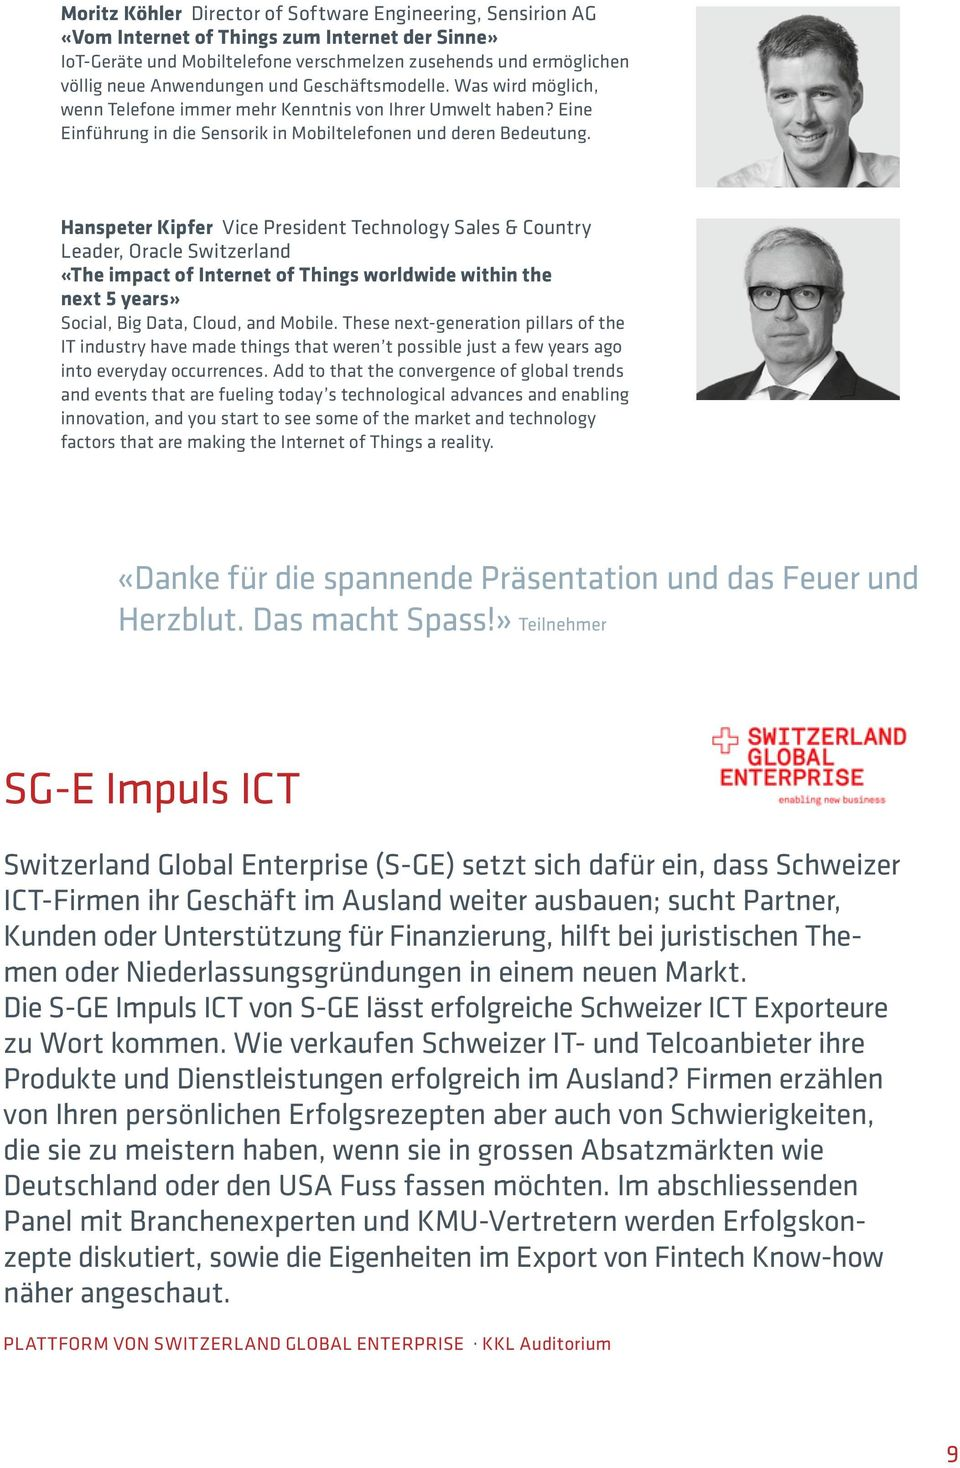 Hanspeter Kipfer Vice President Technology Sales & Country Leader, Oracle Switzerland «The impact of Internet of Things worldwide within the next 5 years» Social, Big Data, Cloud, and Mobile.